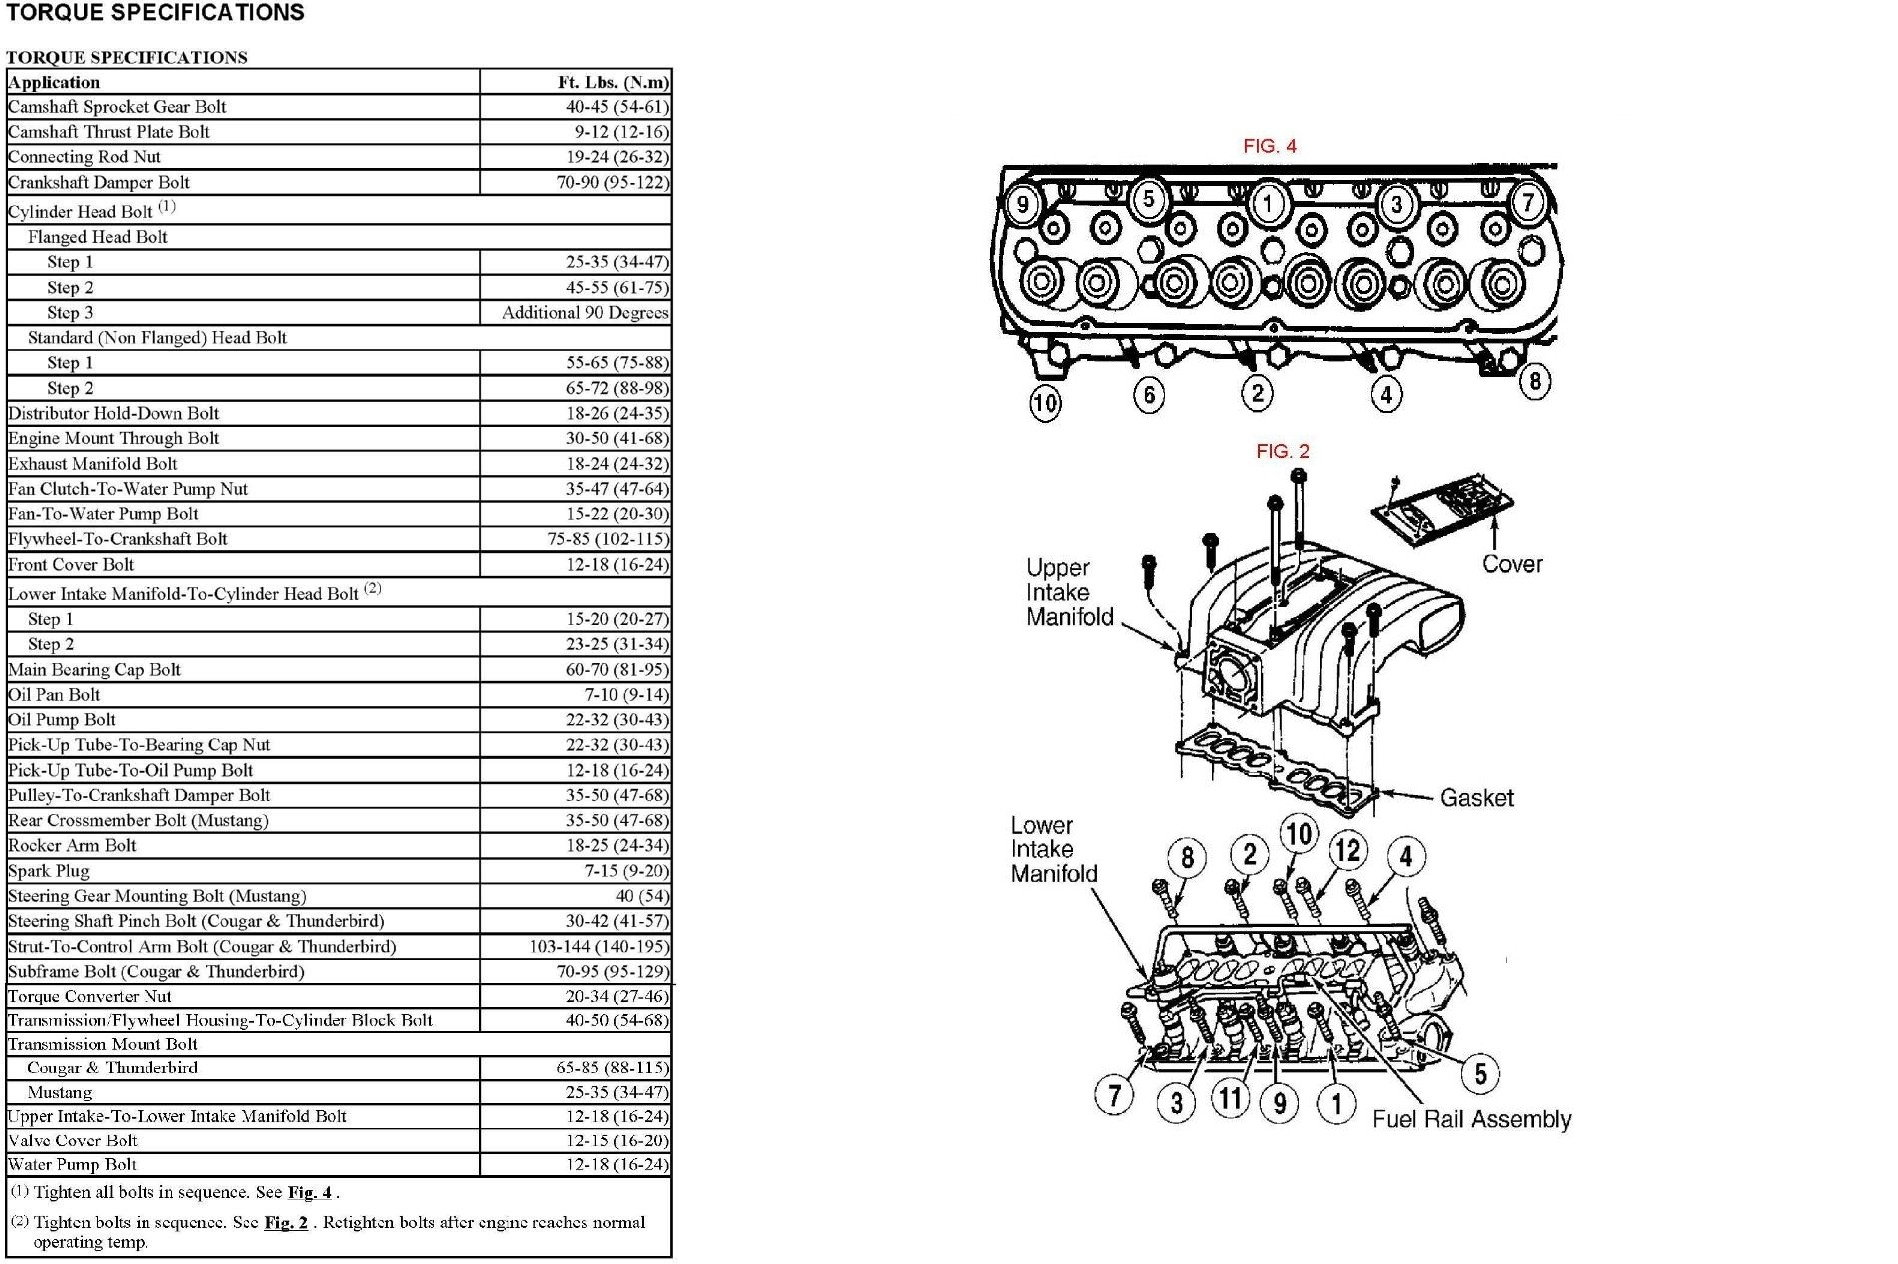 Fox Ford 5 0 Engine Wiring Diagram Wiring Diagram For Free